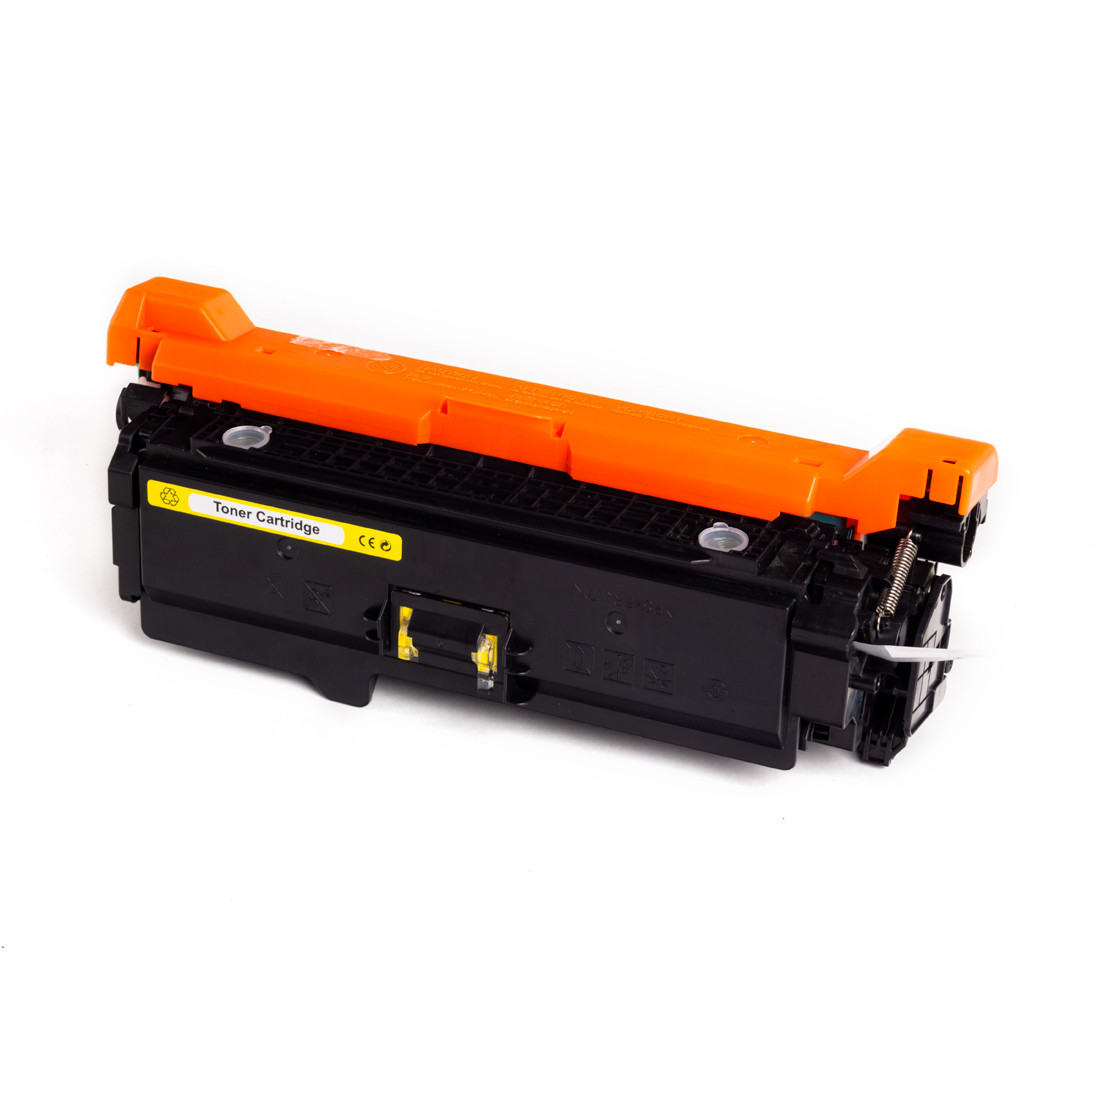 HP CE402A 507A Yellow Cartridge for Color LaserJet M551//MFP M570/MFP M575, up to 6000 pages.